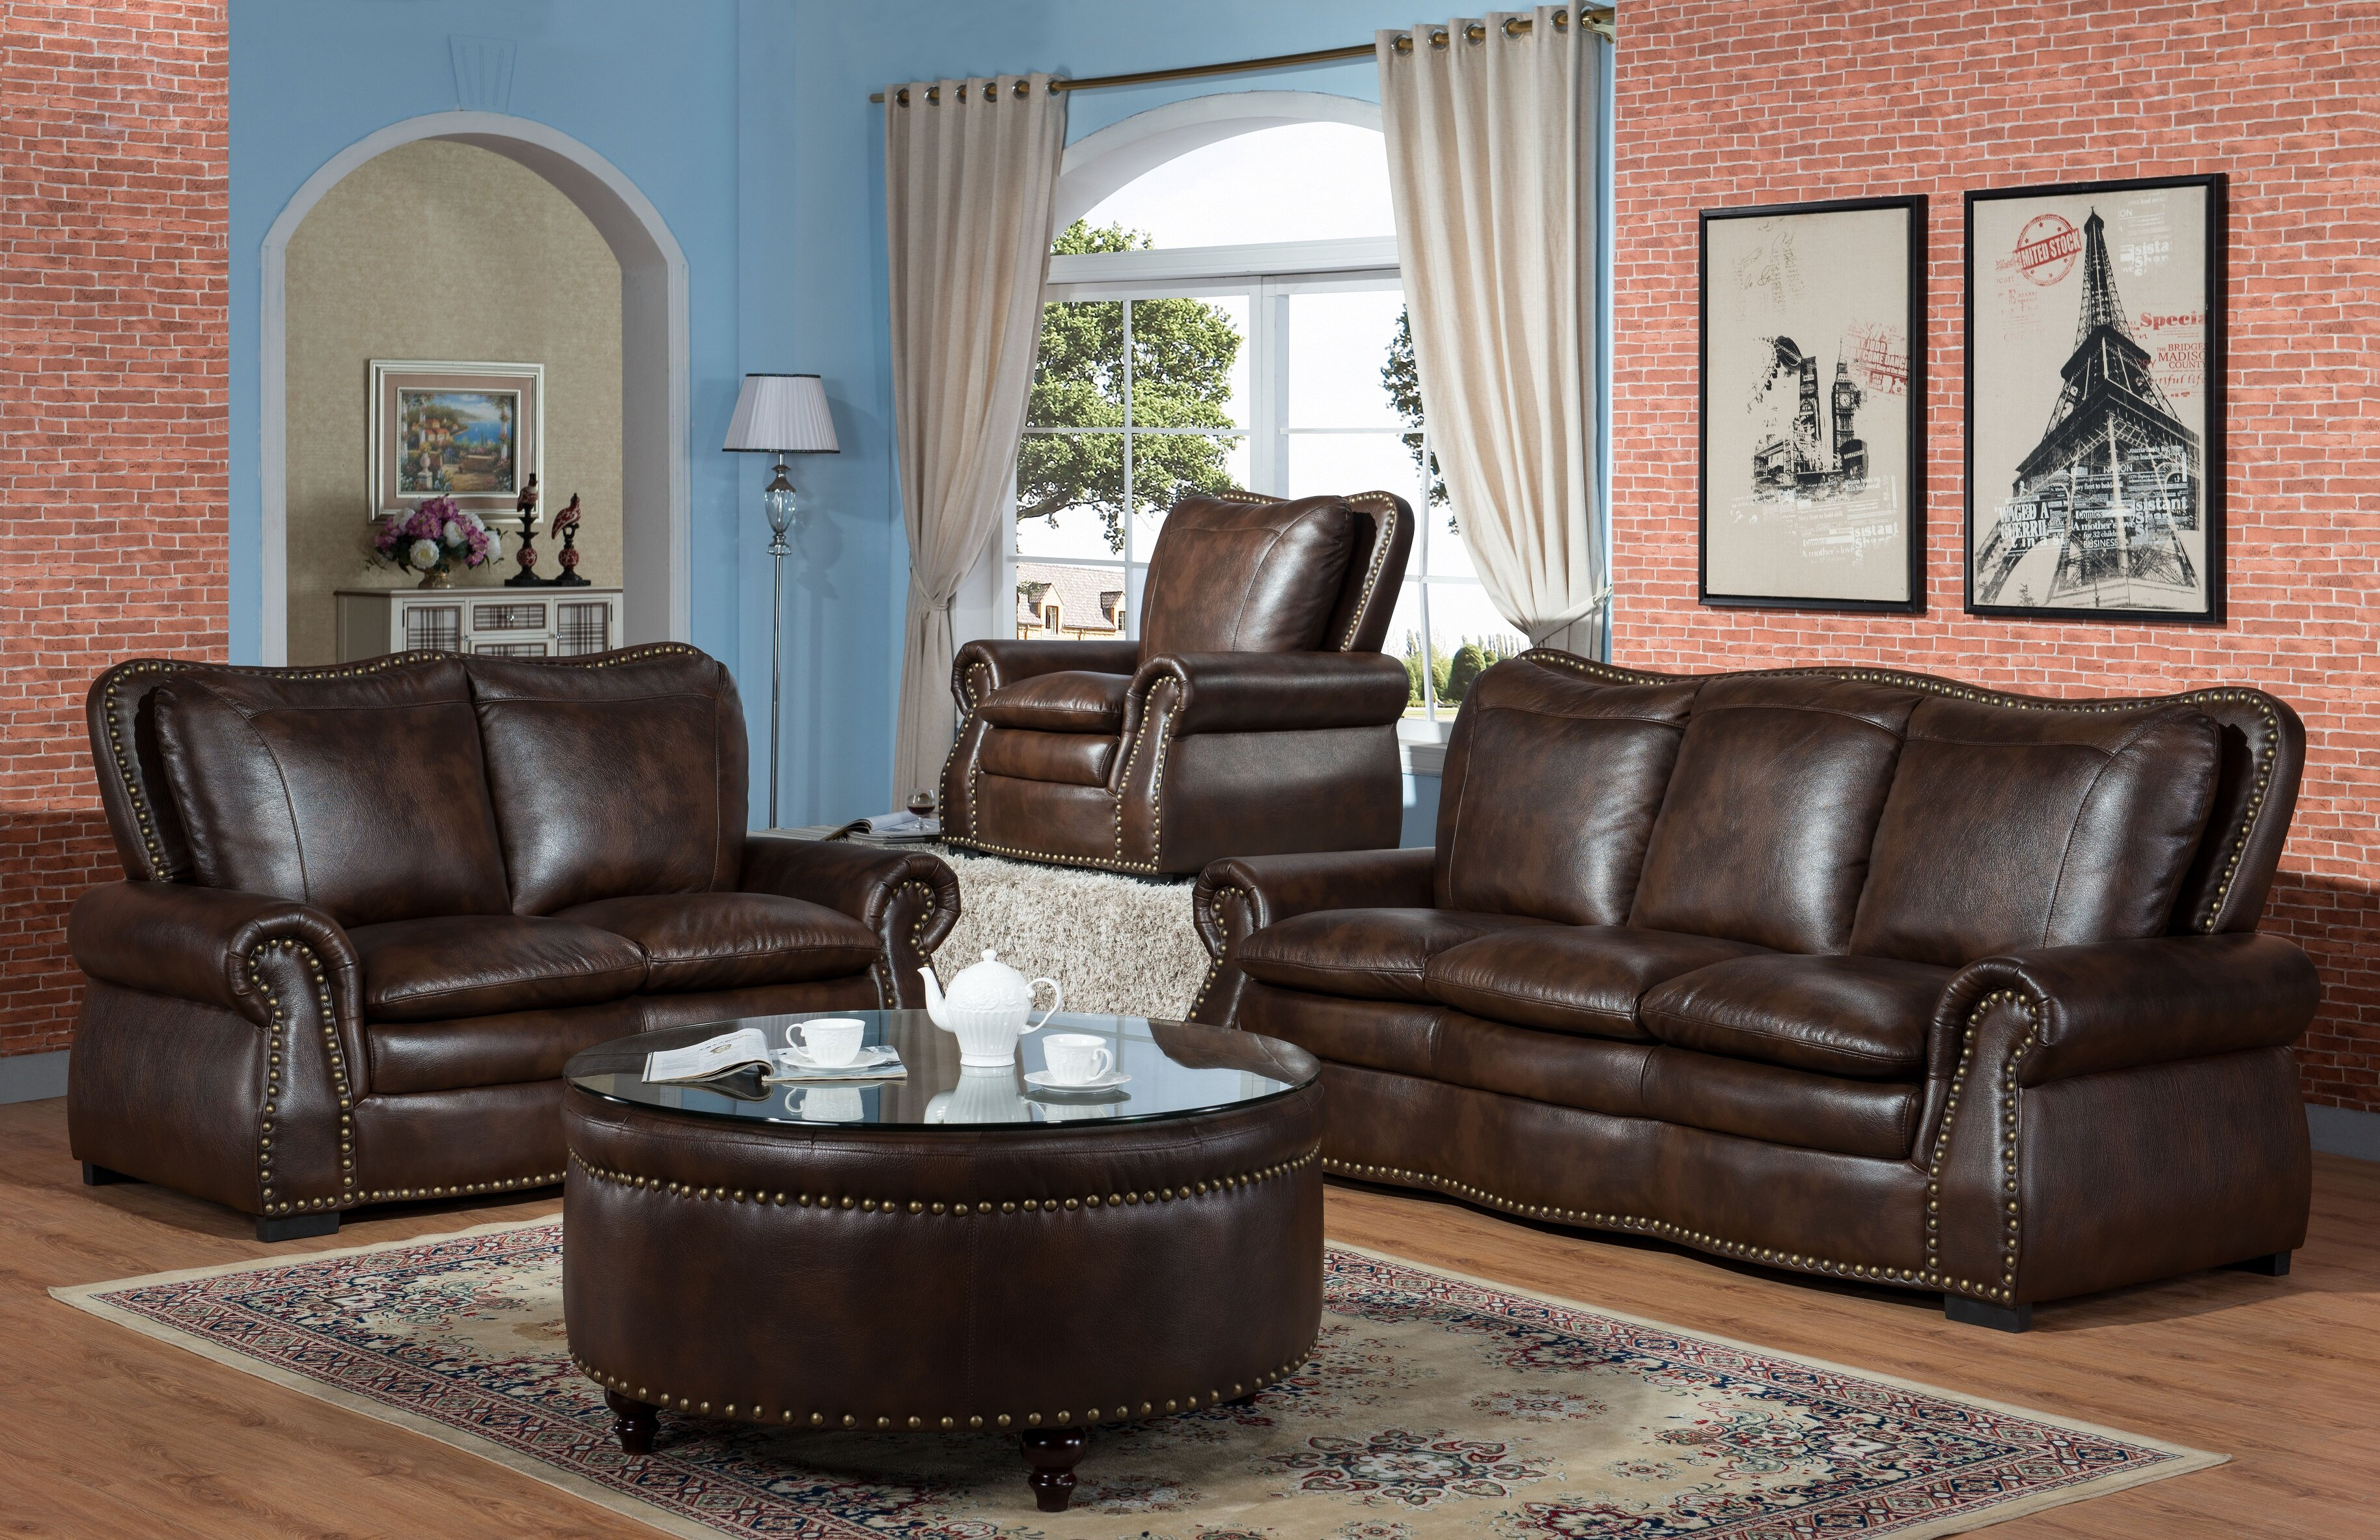 Ultimate Accents American Heritage 2 Piece Living Room Set & Reviews